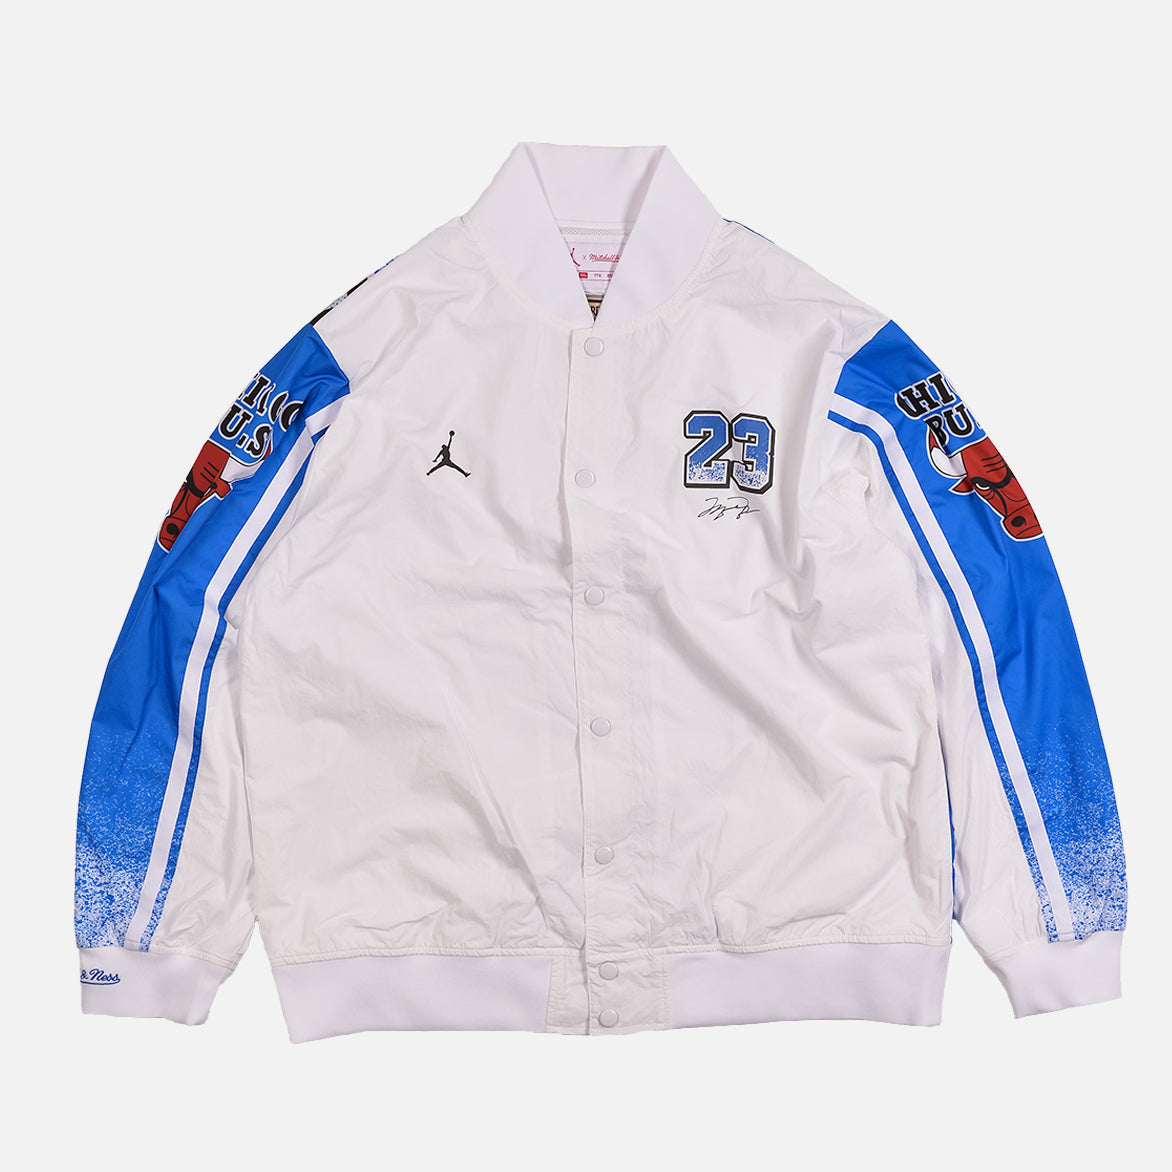 MITCHELL & NESS X JORDAN 1988 ALL STAR WARM UP JACKET - WHITE